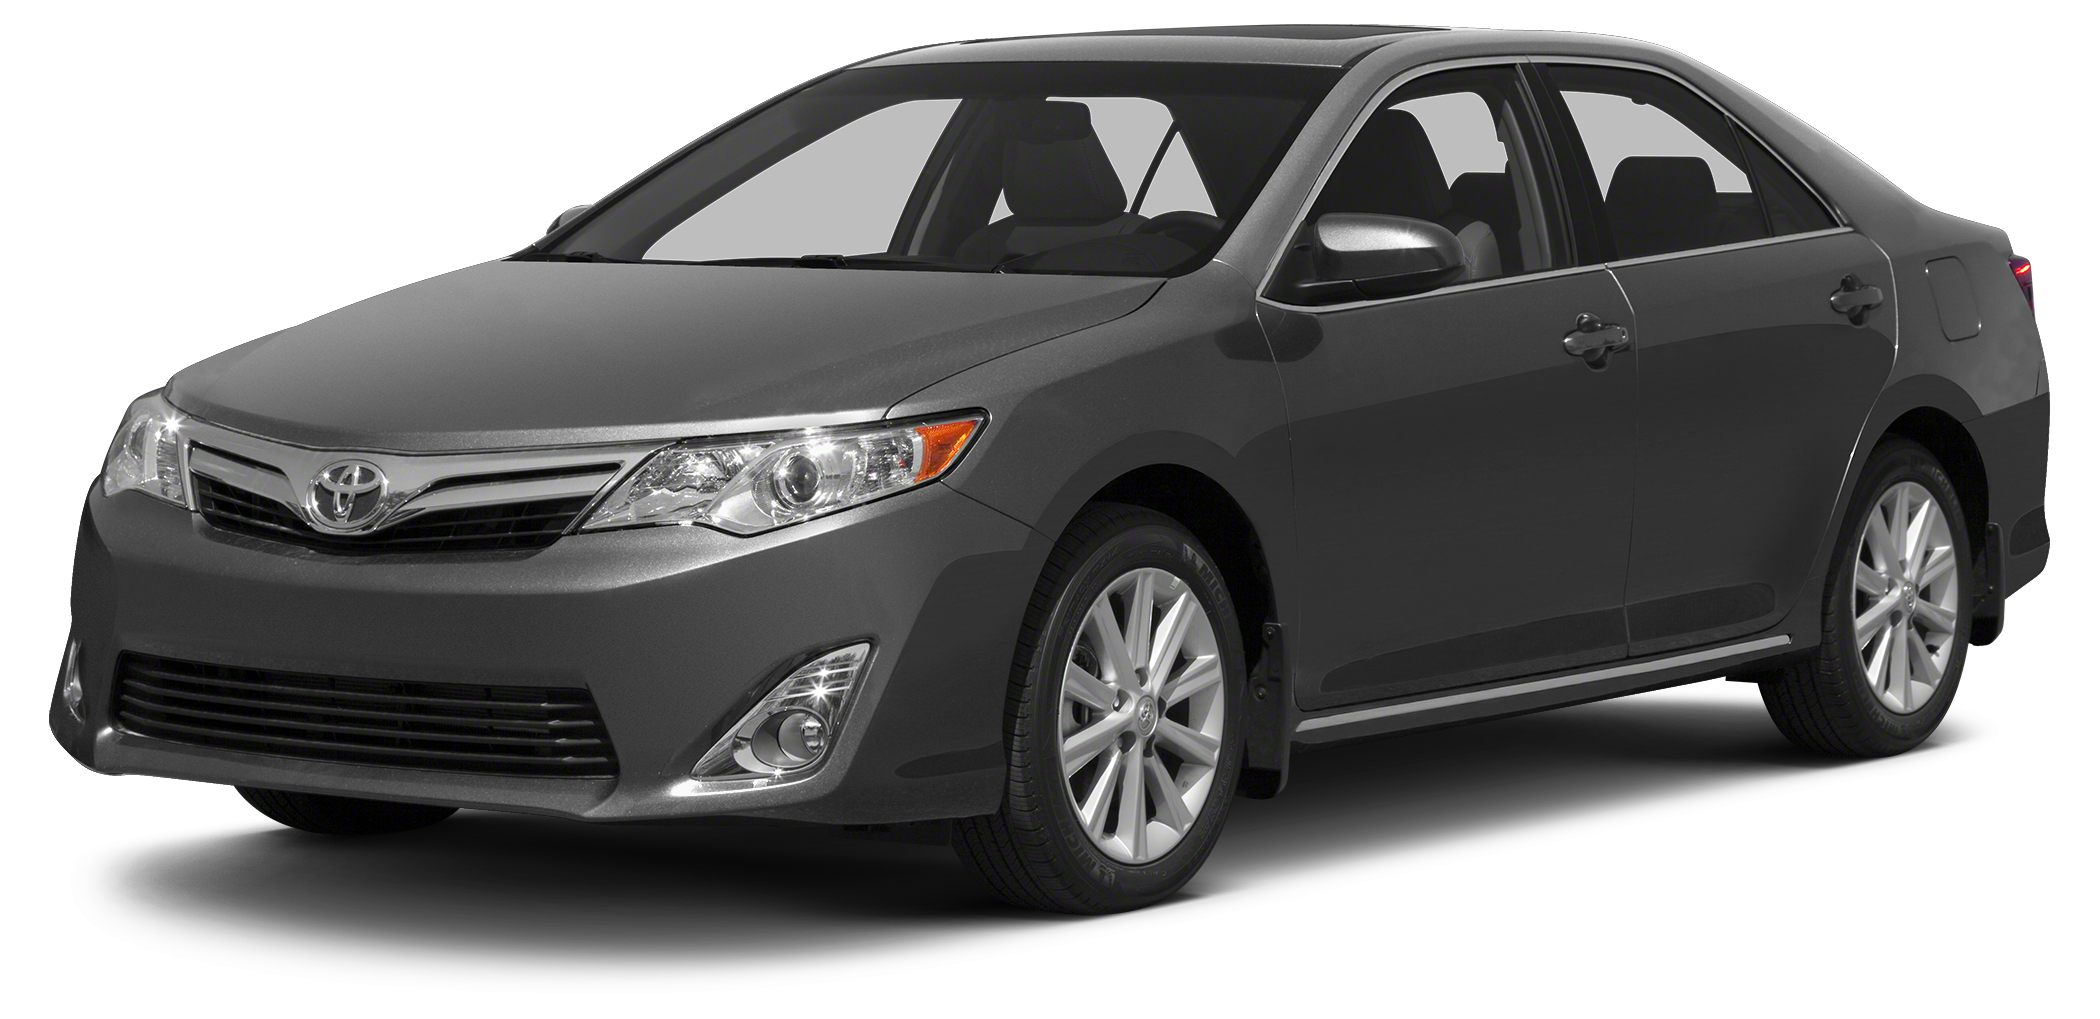 2012 Toyota Camry LE CARFAX 1-Owner LOW MILES - 22739 FUEL EFFICIENT 35 MPG Hwy25 MPG City LE